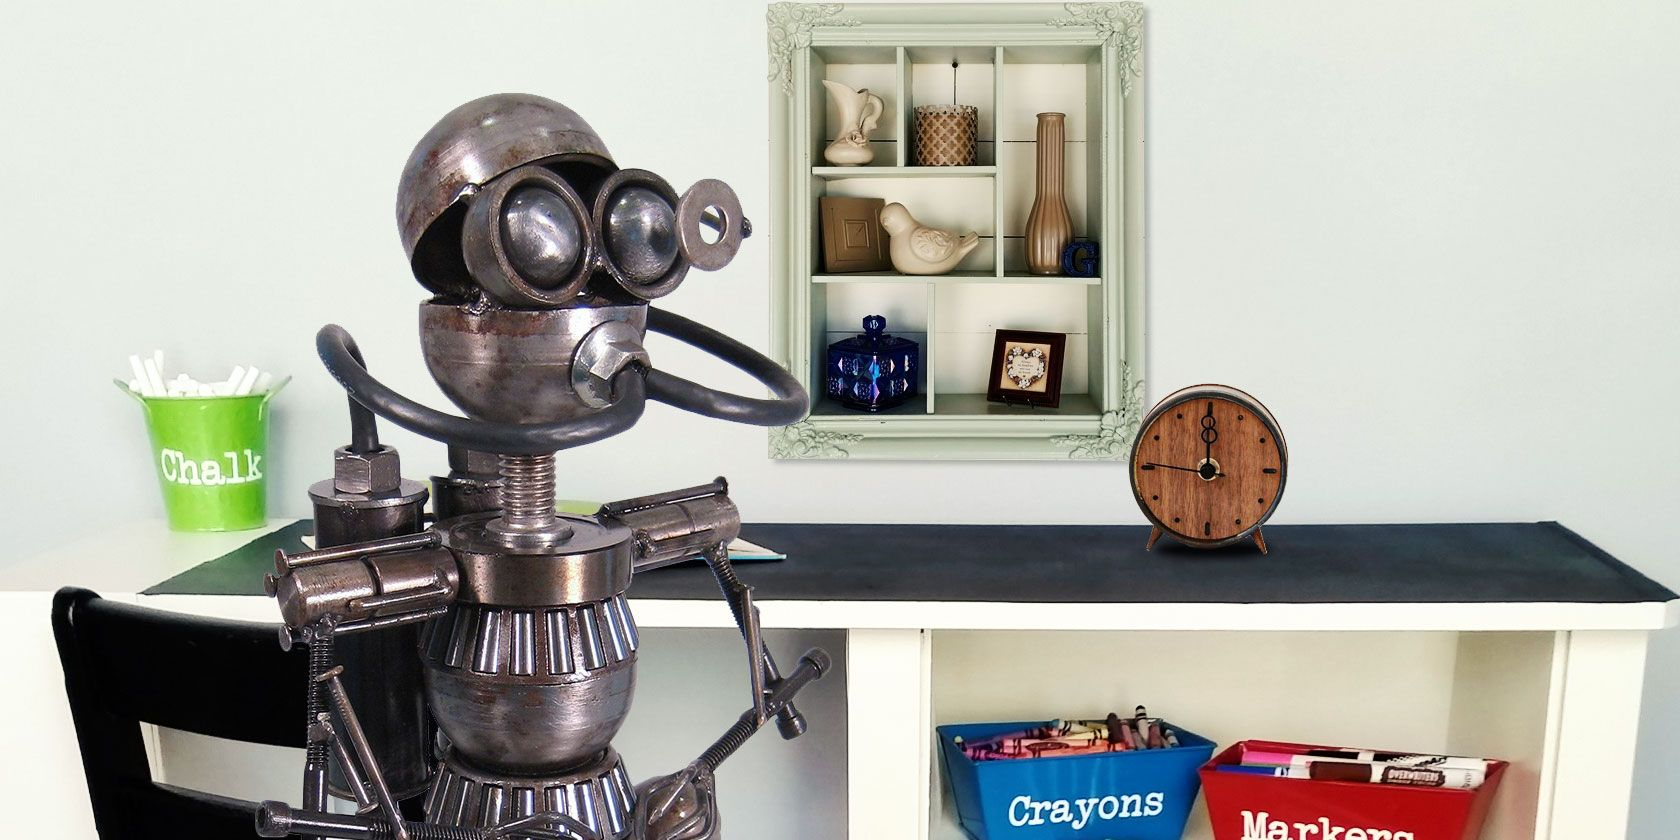 Reuse, Repurpose, and Upcycle Anything With These Guides